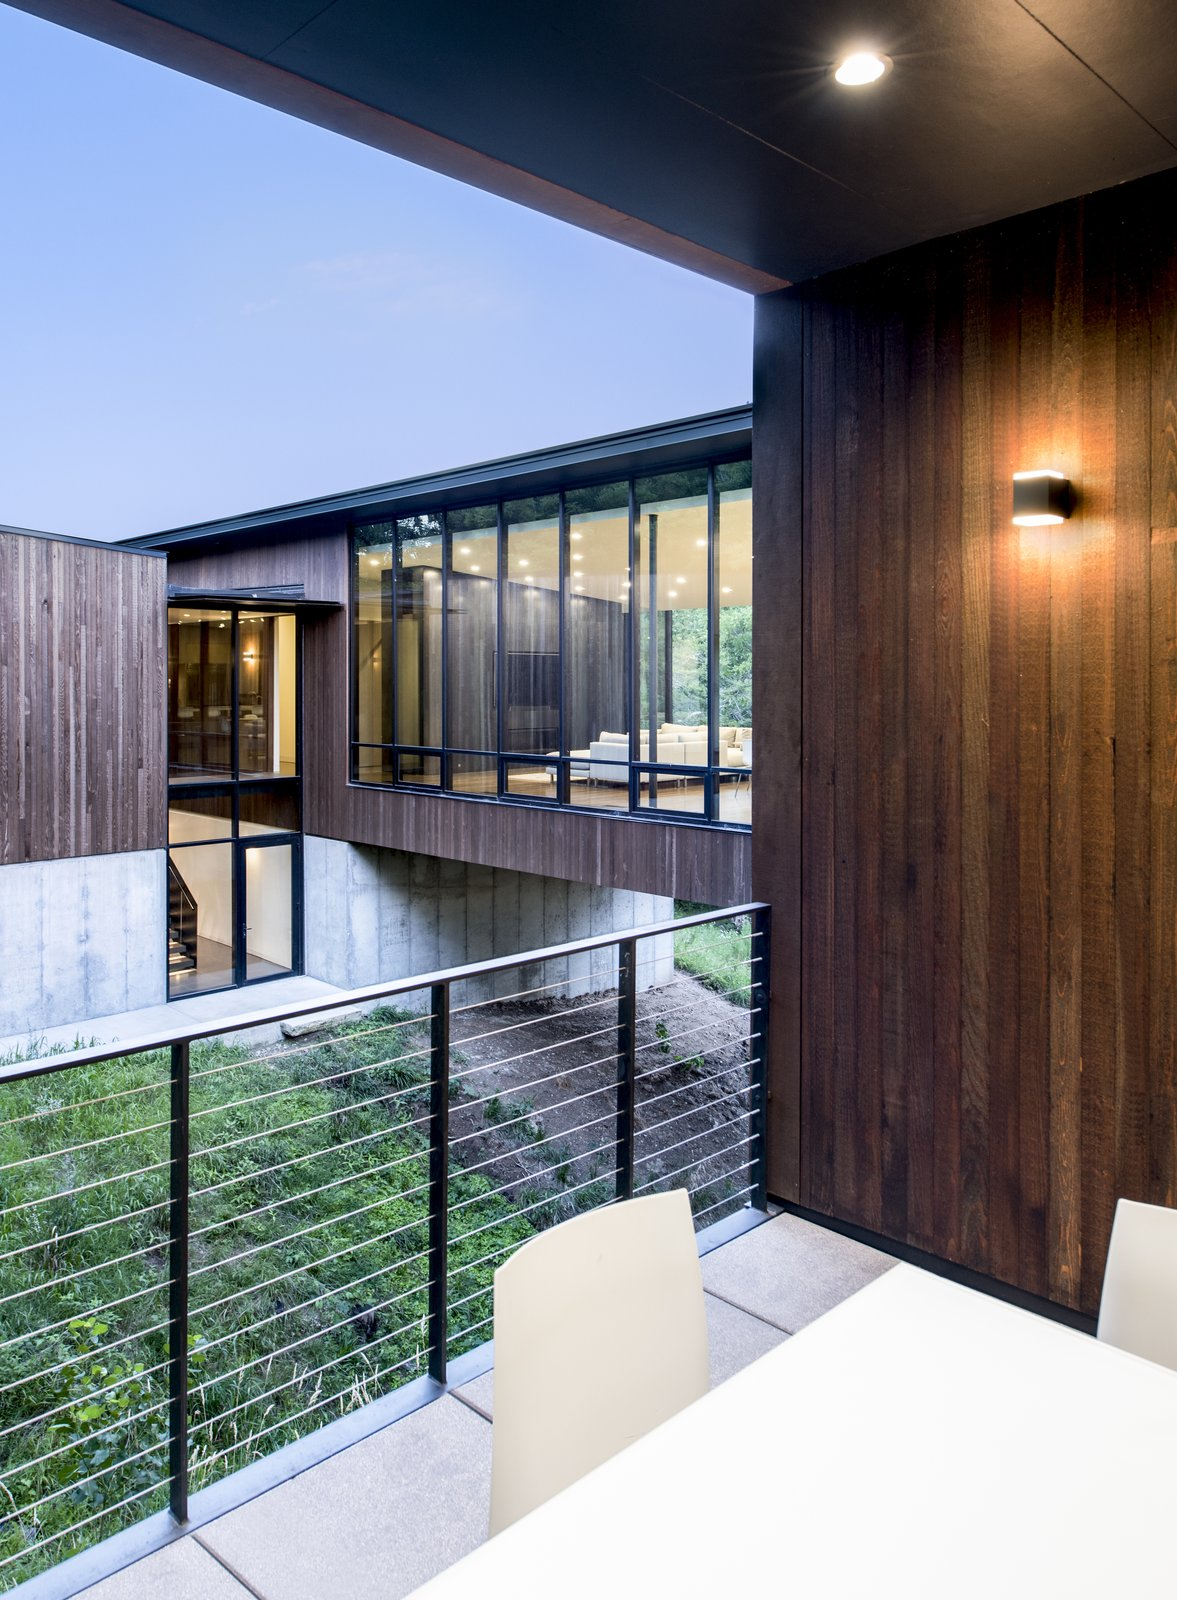 Outdoor and Small Patio, Porch, Deck Despite the large amounts of glass, the organization of the house creates spaces of refuge.  The outdoor patio is nestled into the hillside, sheltered by landscape and building.  Photo 5 of 10 in An Incredible Forest Home Leaps Over a Ravine